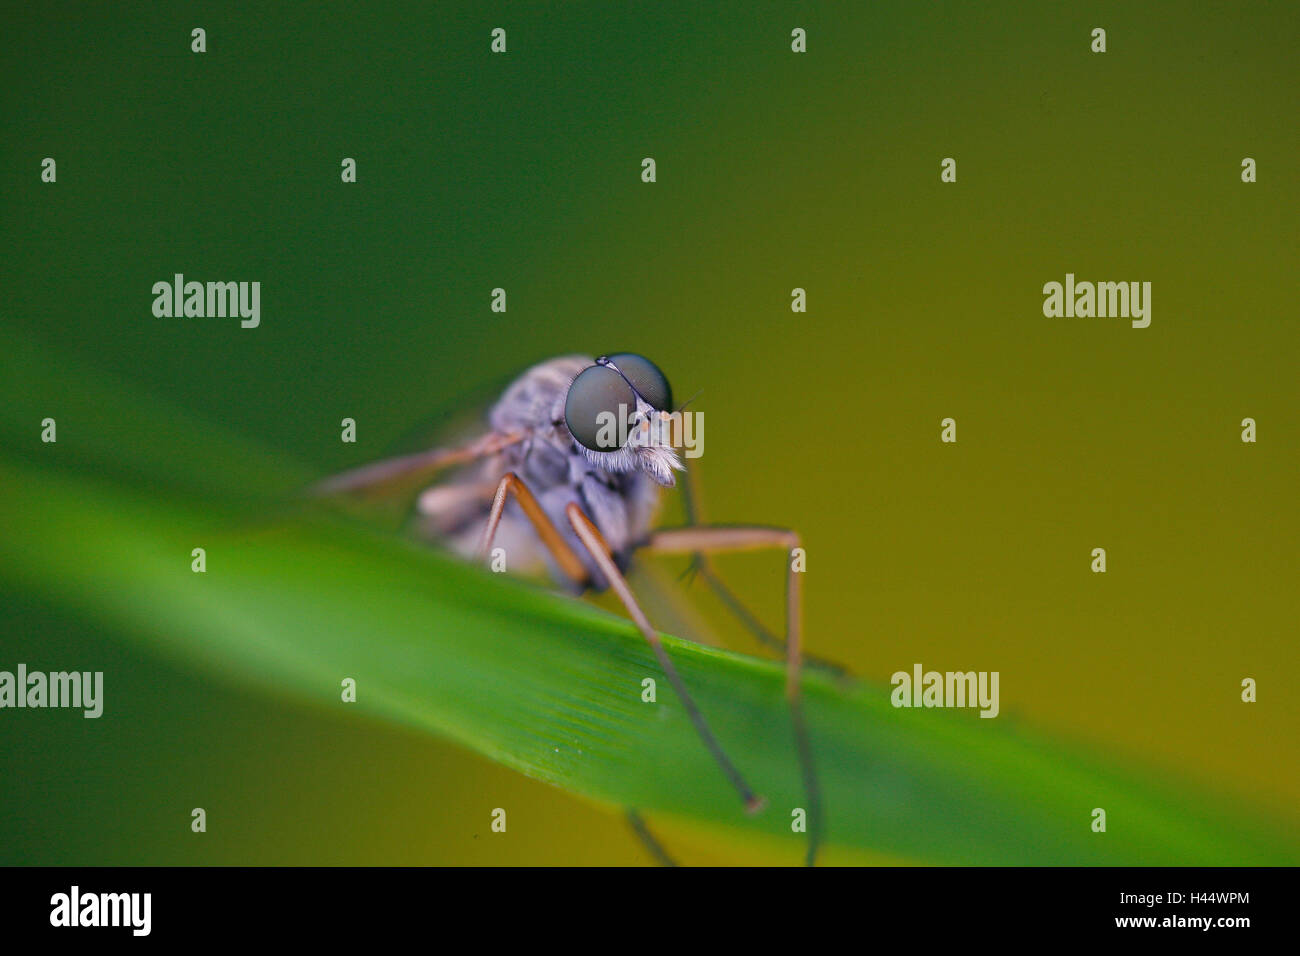 Fly, blade of grass, diptera, Stock Photo